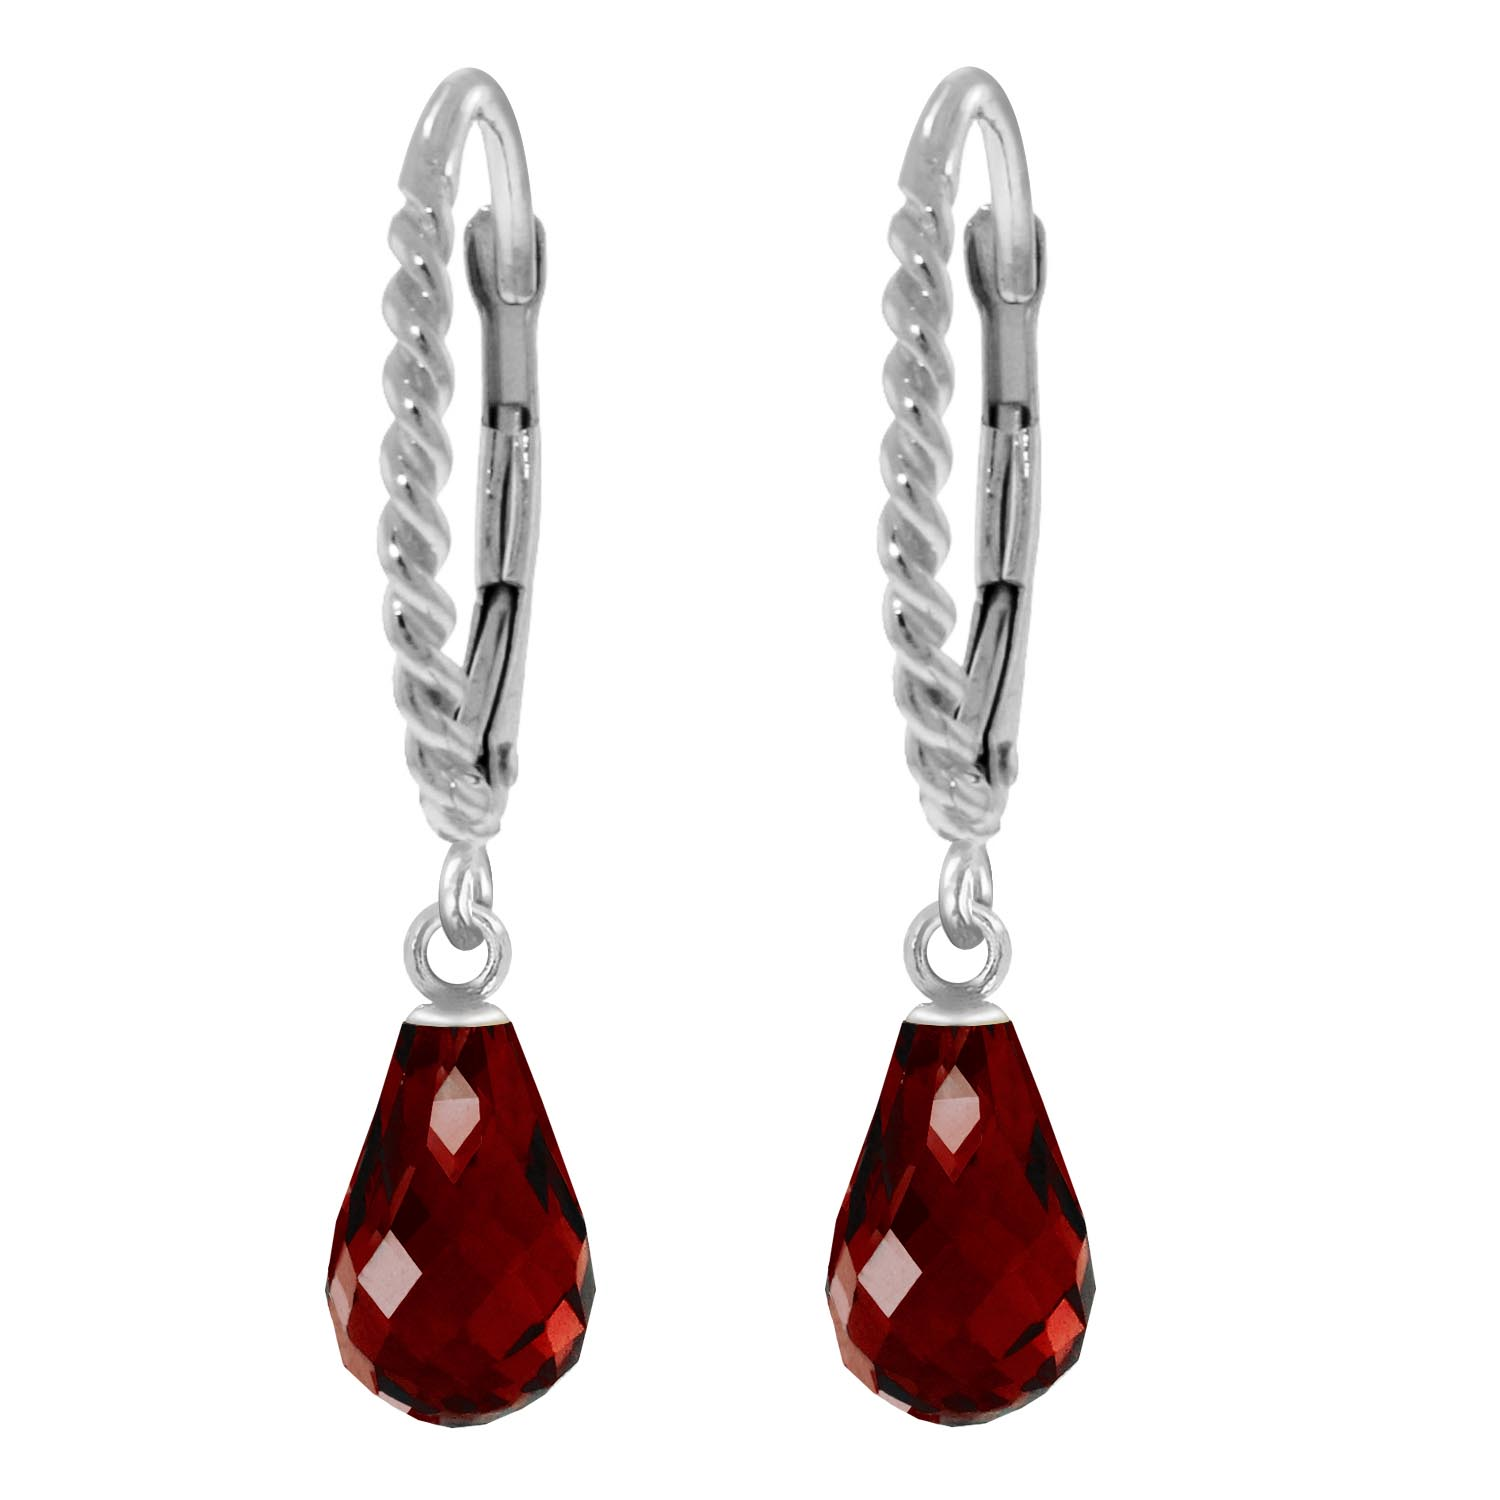 Garnet Plait Stem Briolette Drop Earrings 3.0ctw in 9ct White Gold